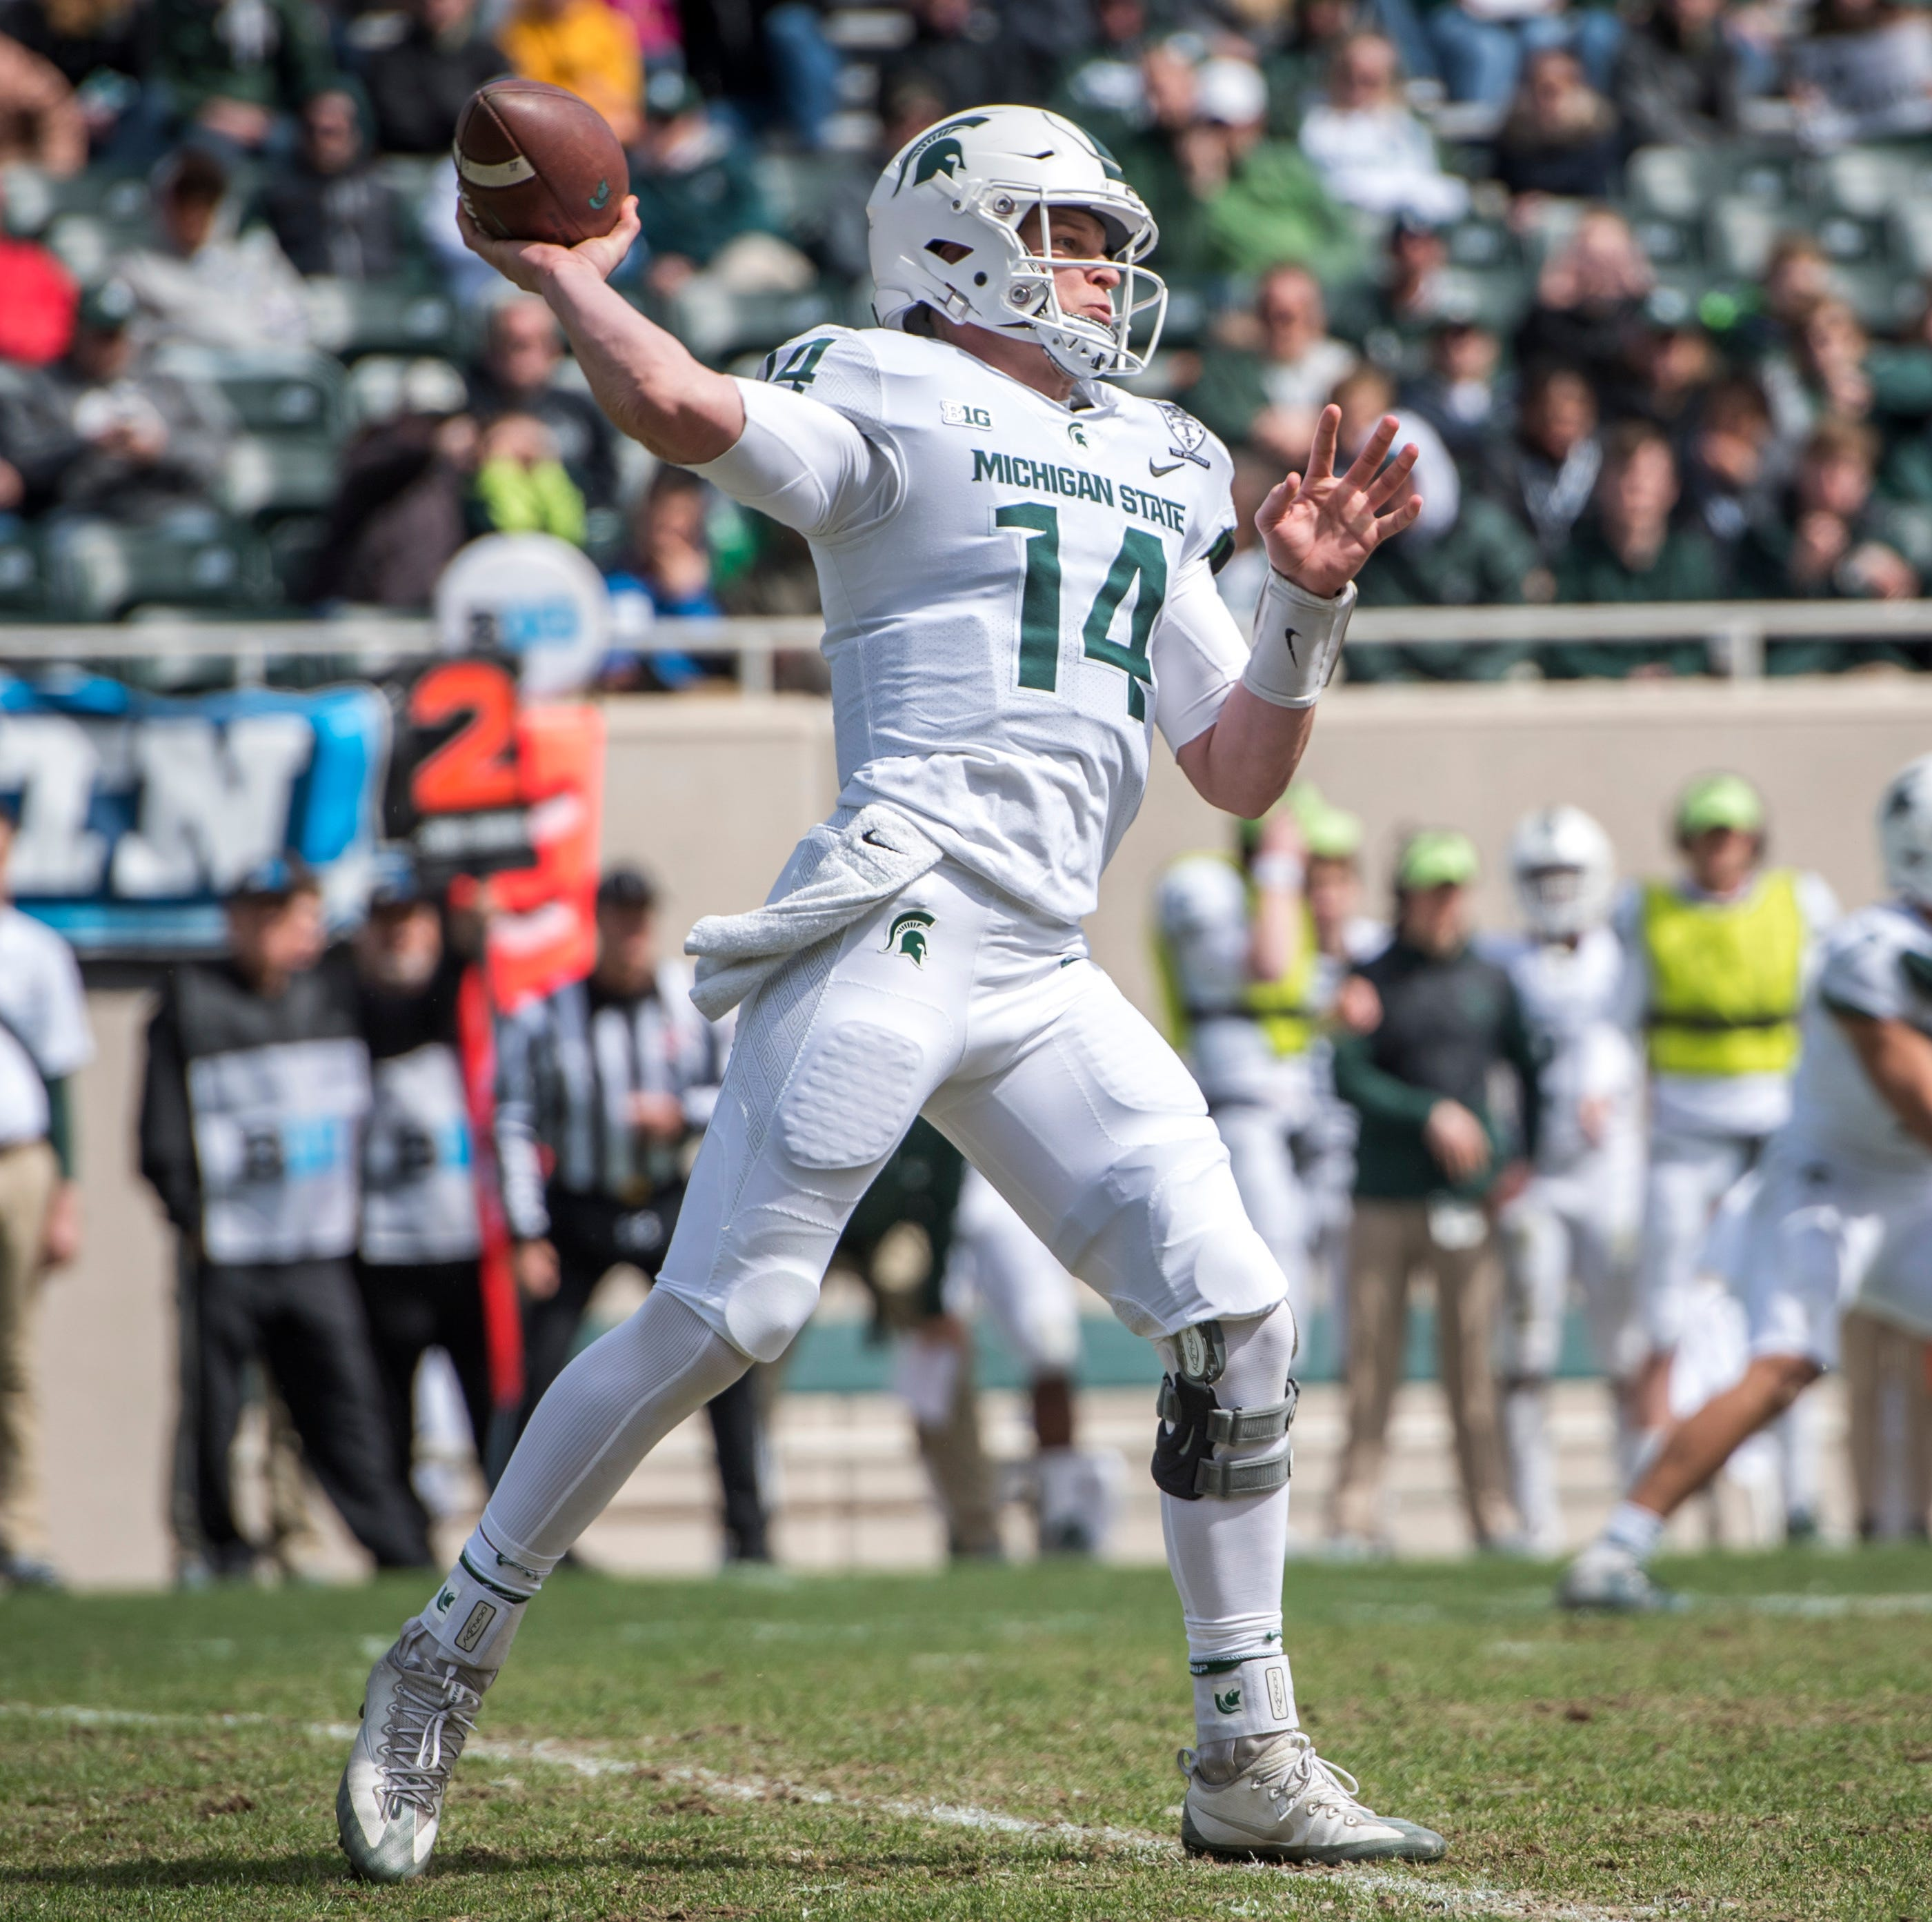 'He had good zip': Michigan State QB Brian Lewerke passes spring test in a breeze